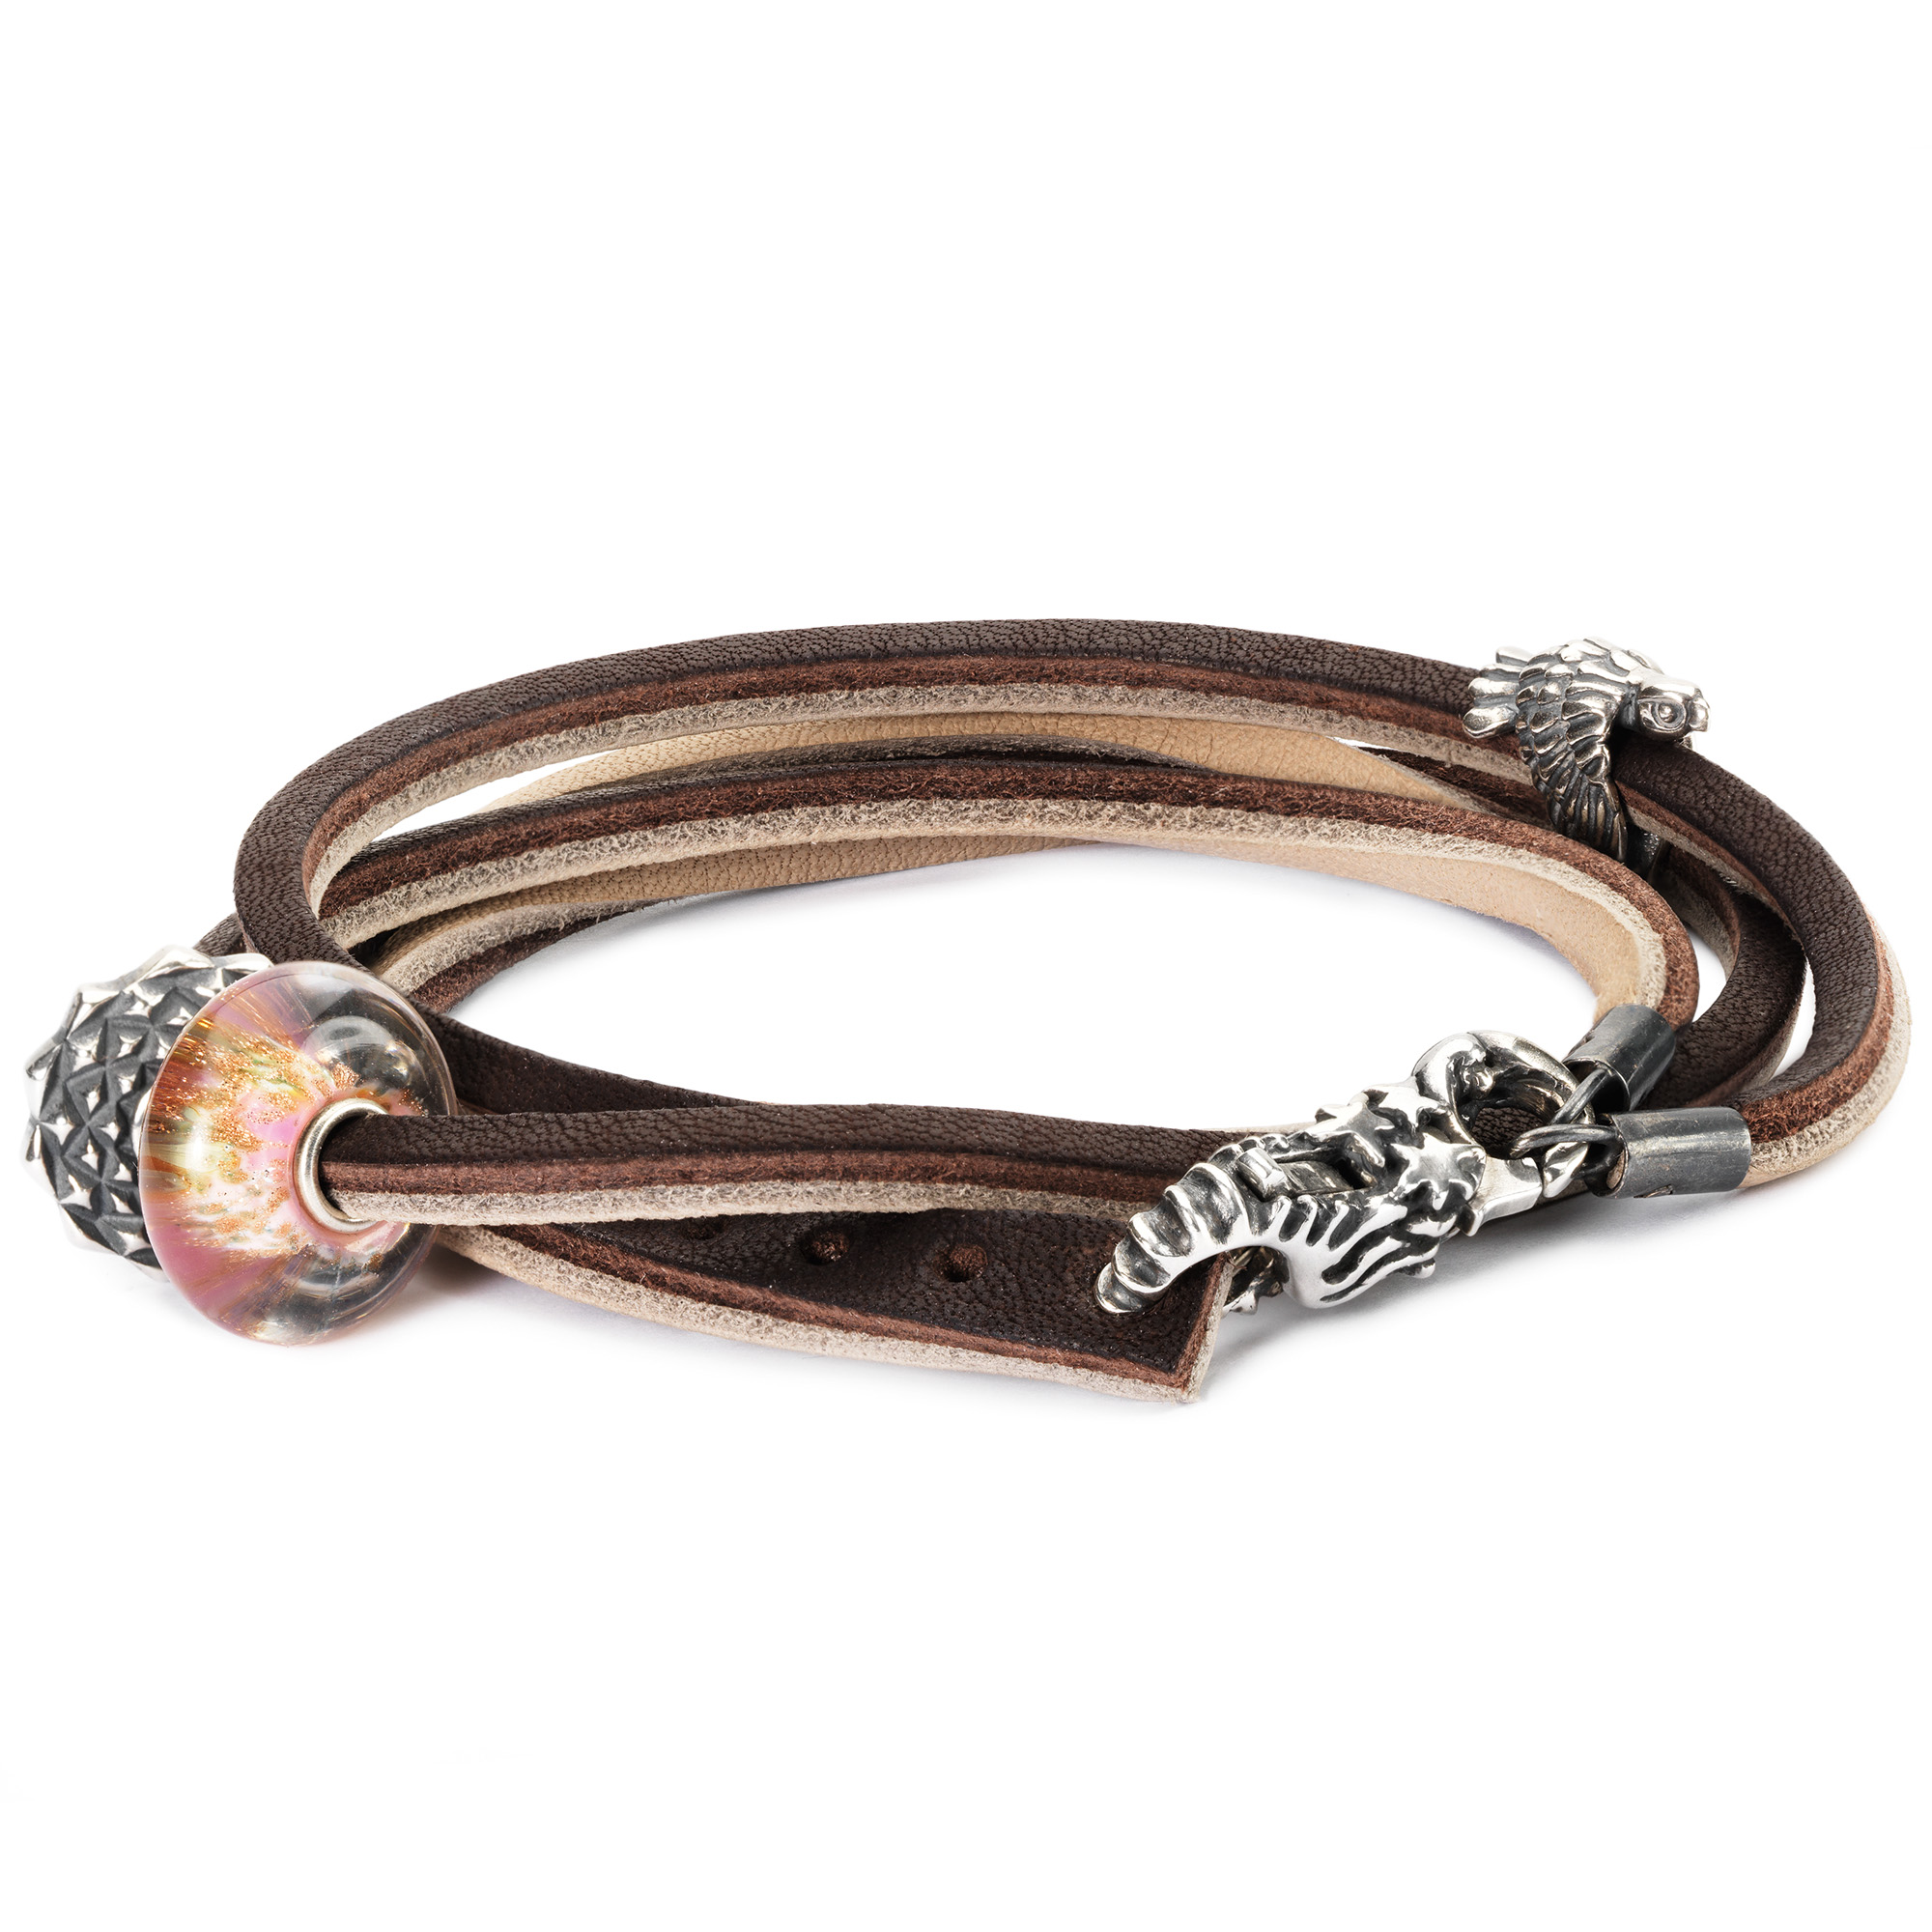 Leather Bracelet, Brown, Light Grey with Charms www.trollbeads.com